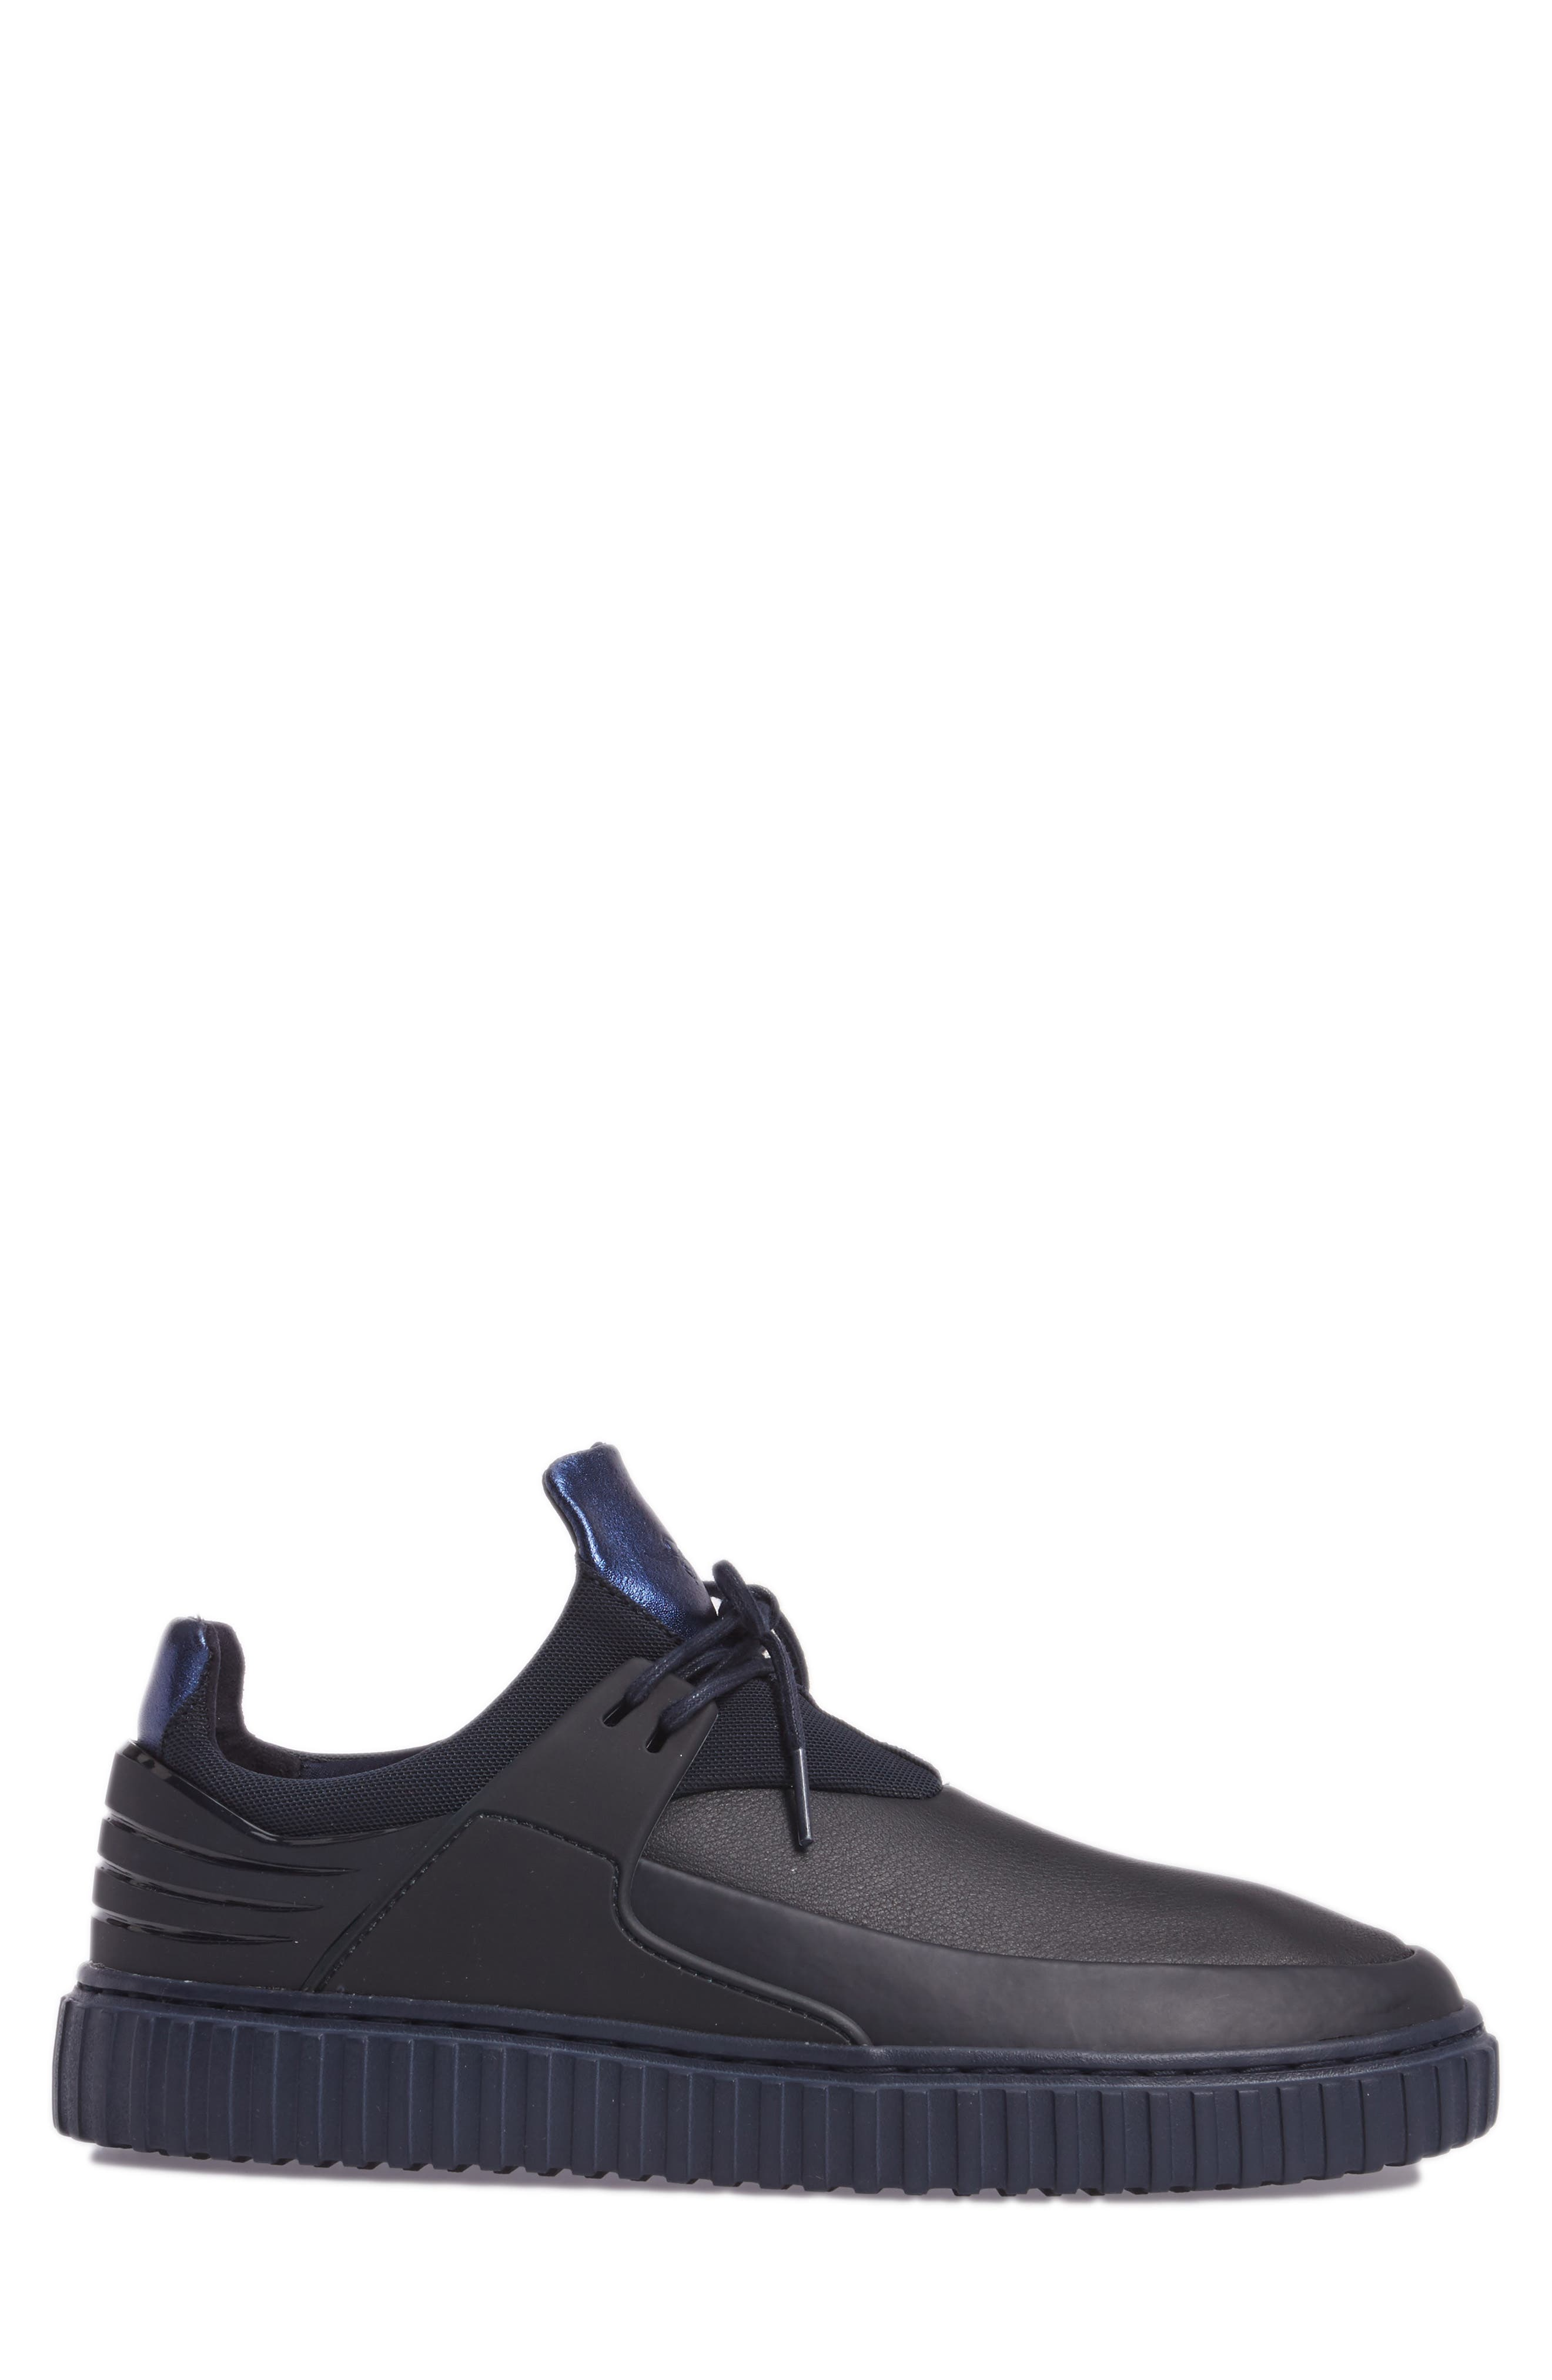 Castucci Mid Sneaker,                             Alternate thumbnail 3, color,                             Navy Leather